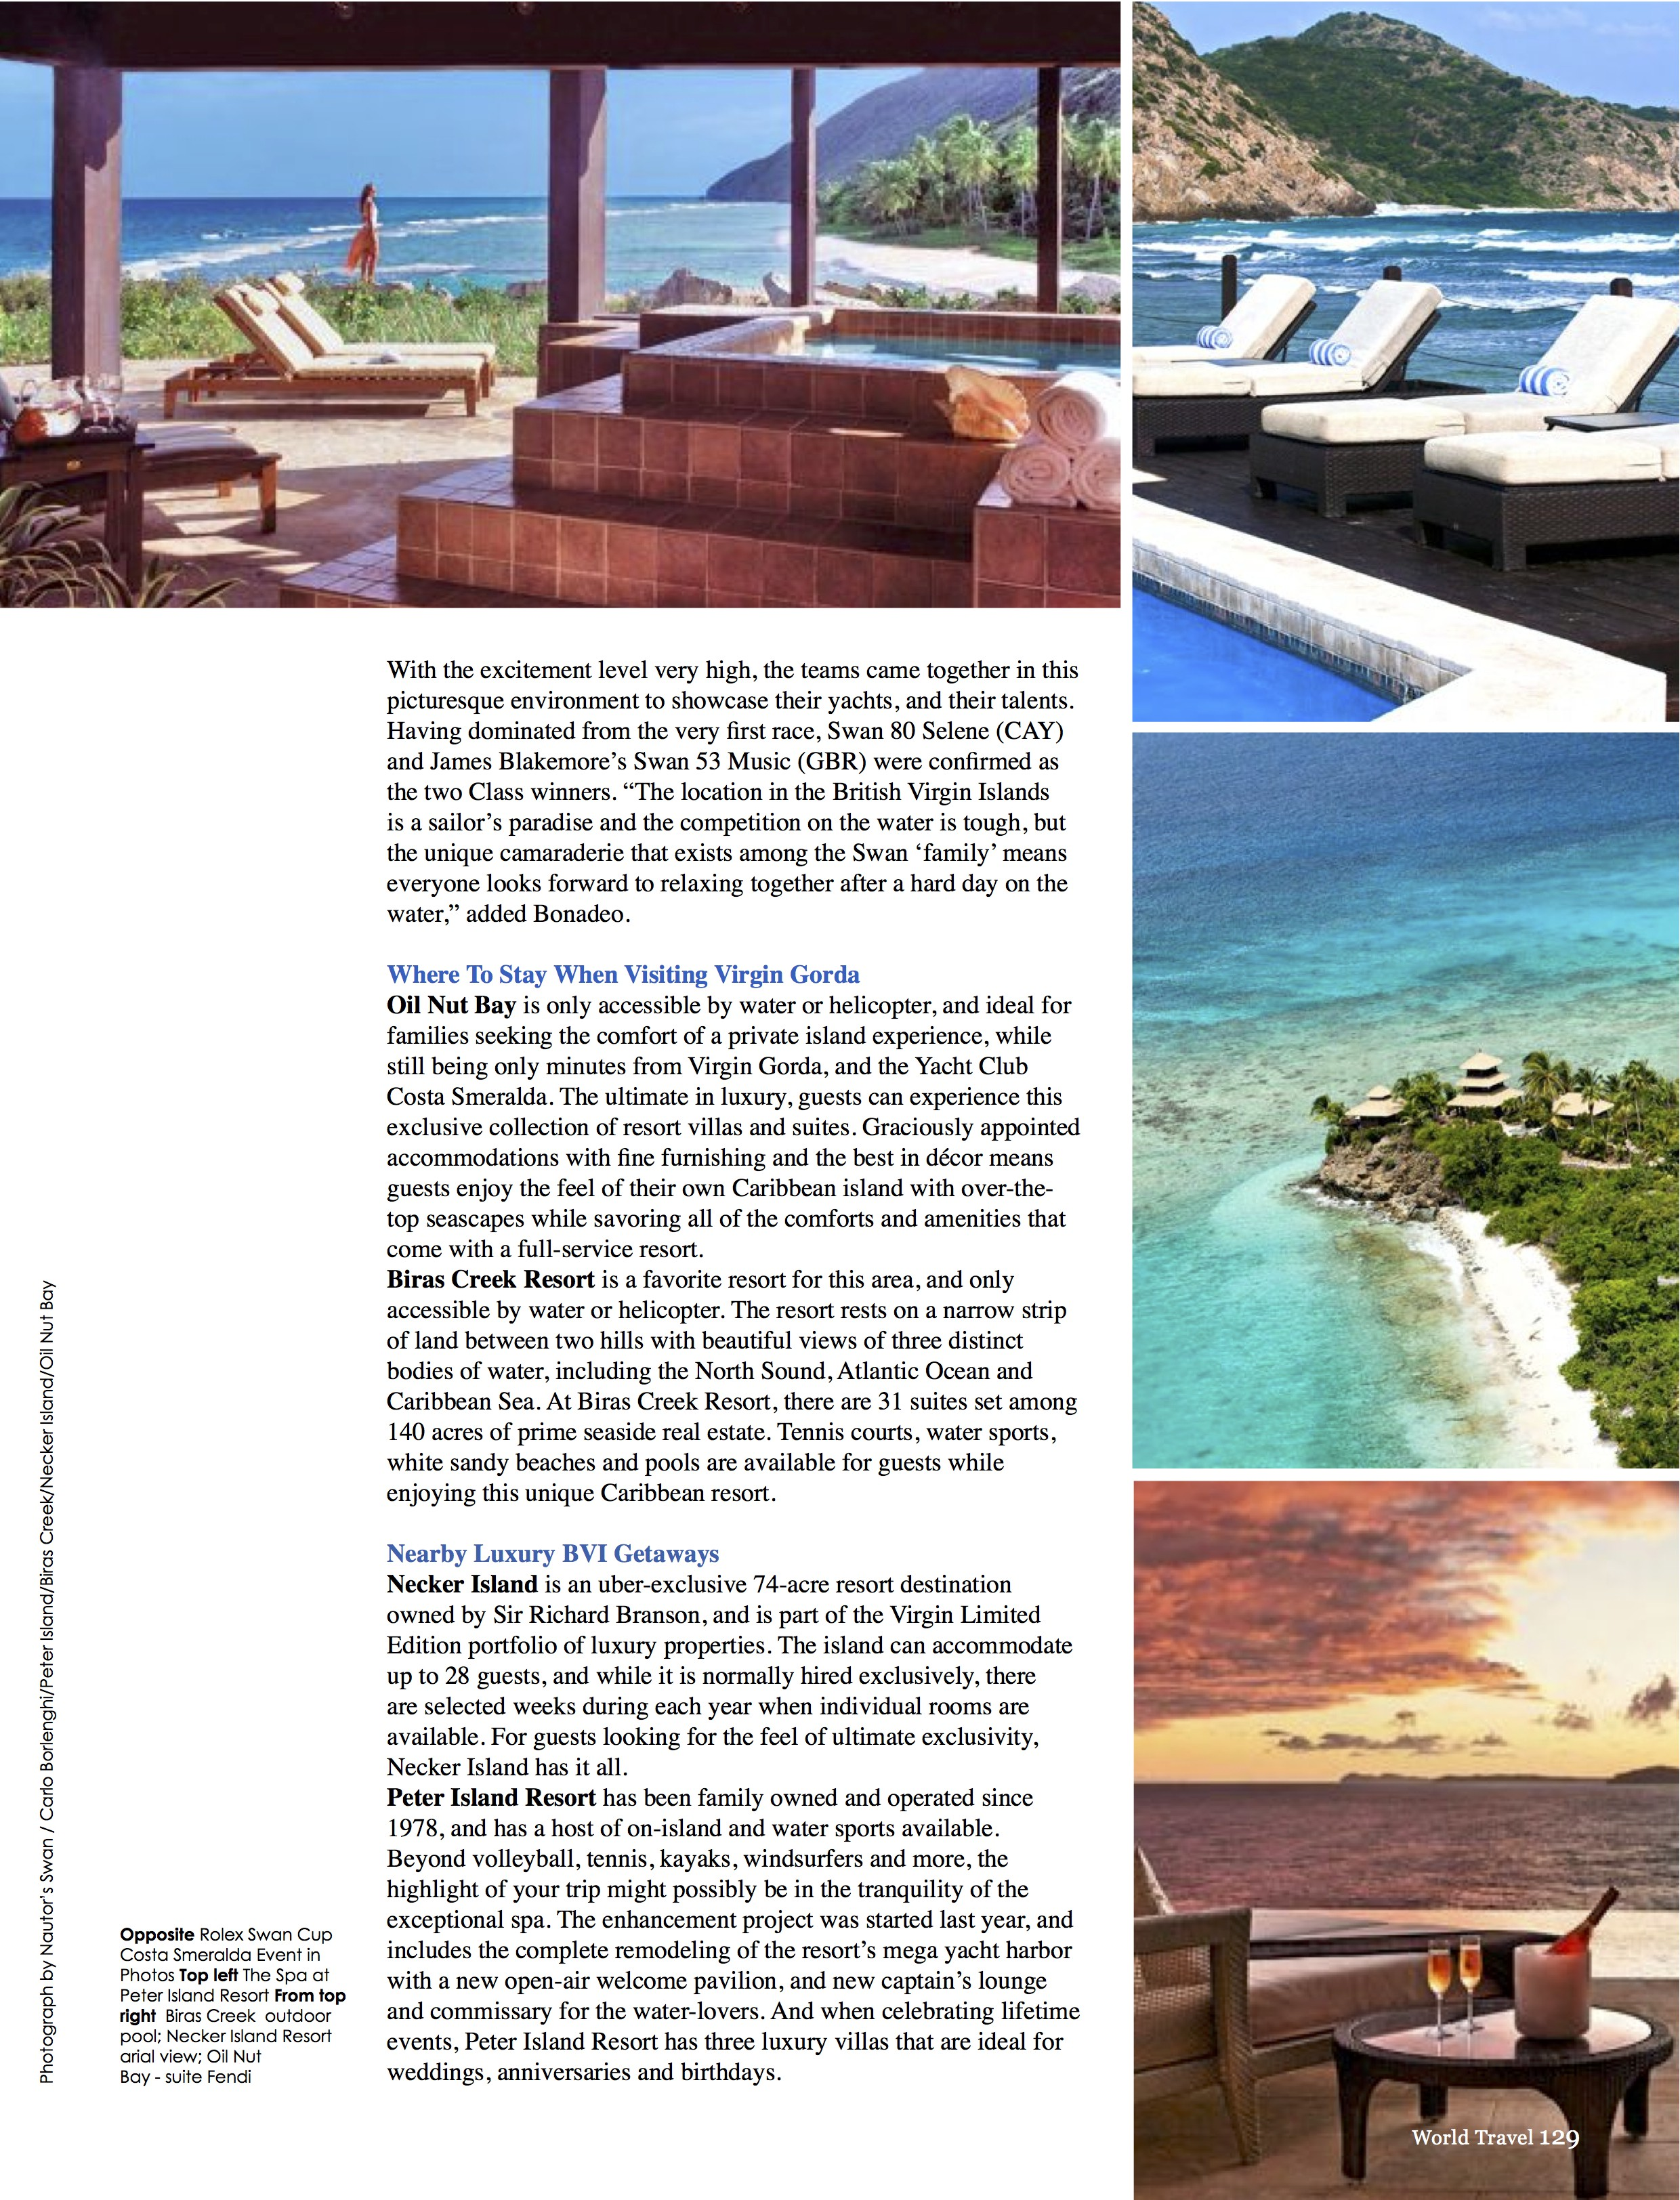 WTM May-June 2015_Caribbean_4_Damon-M-Banks